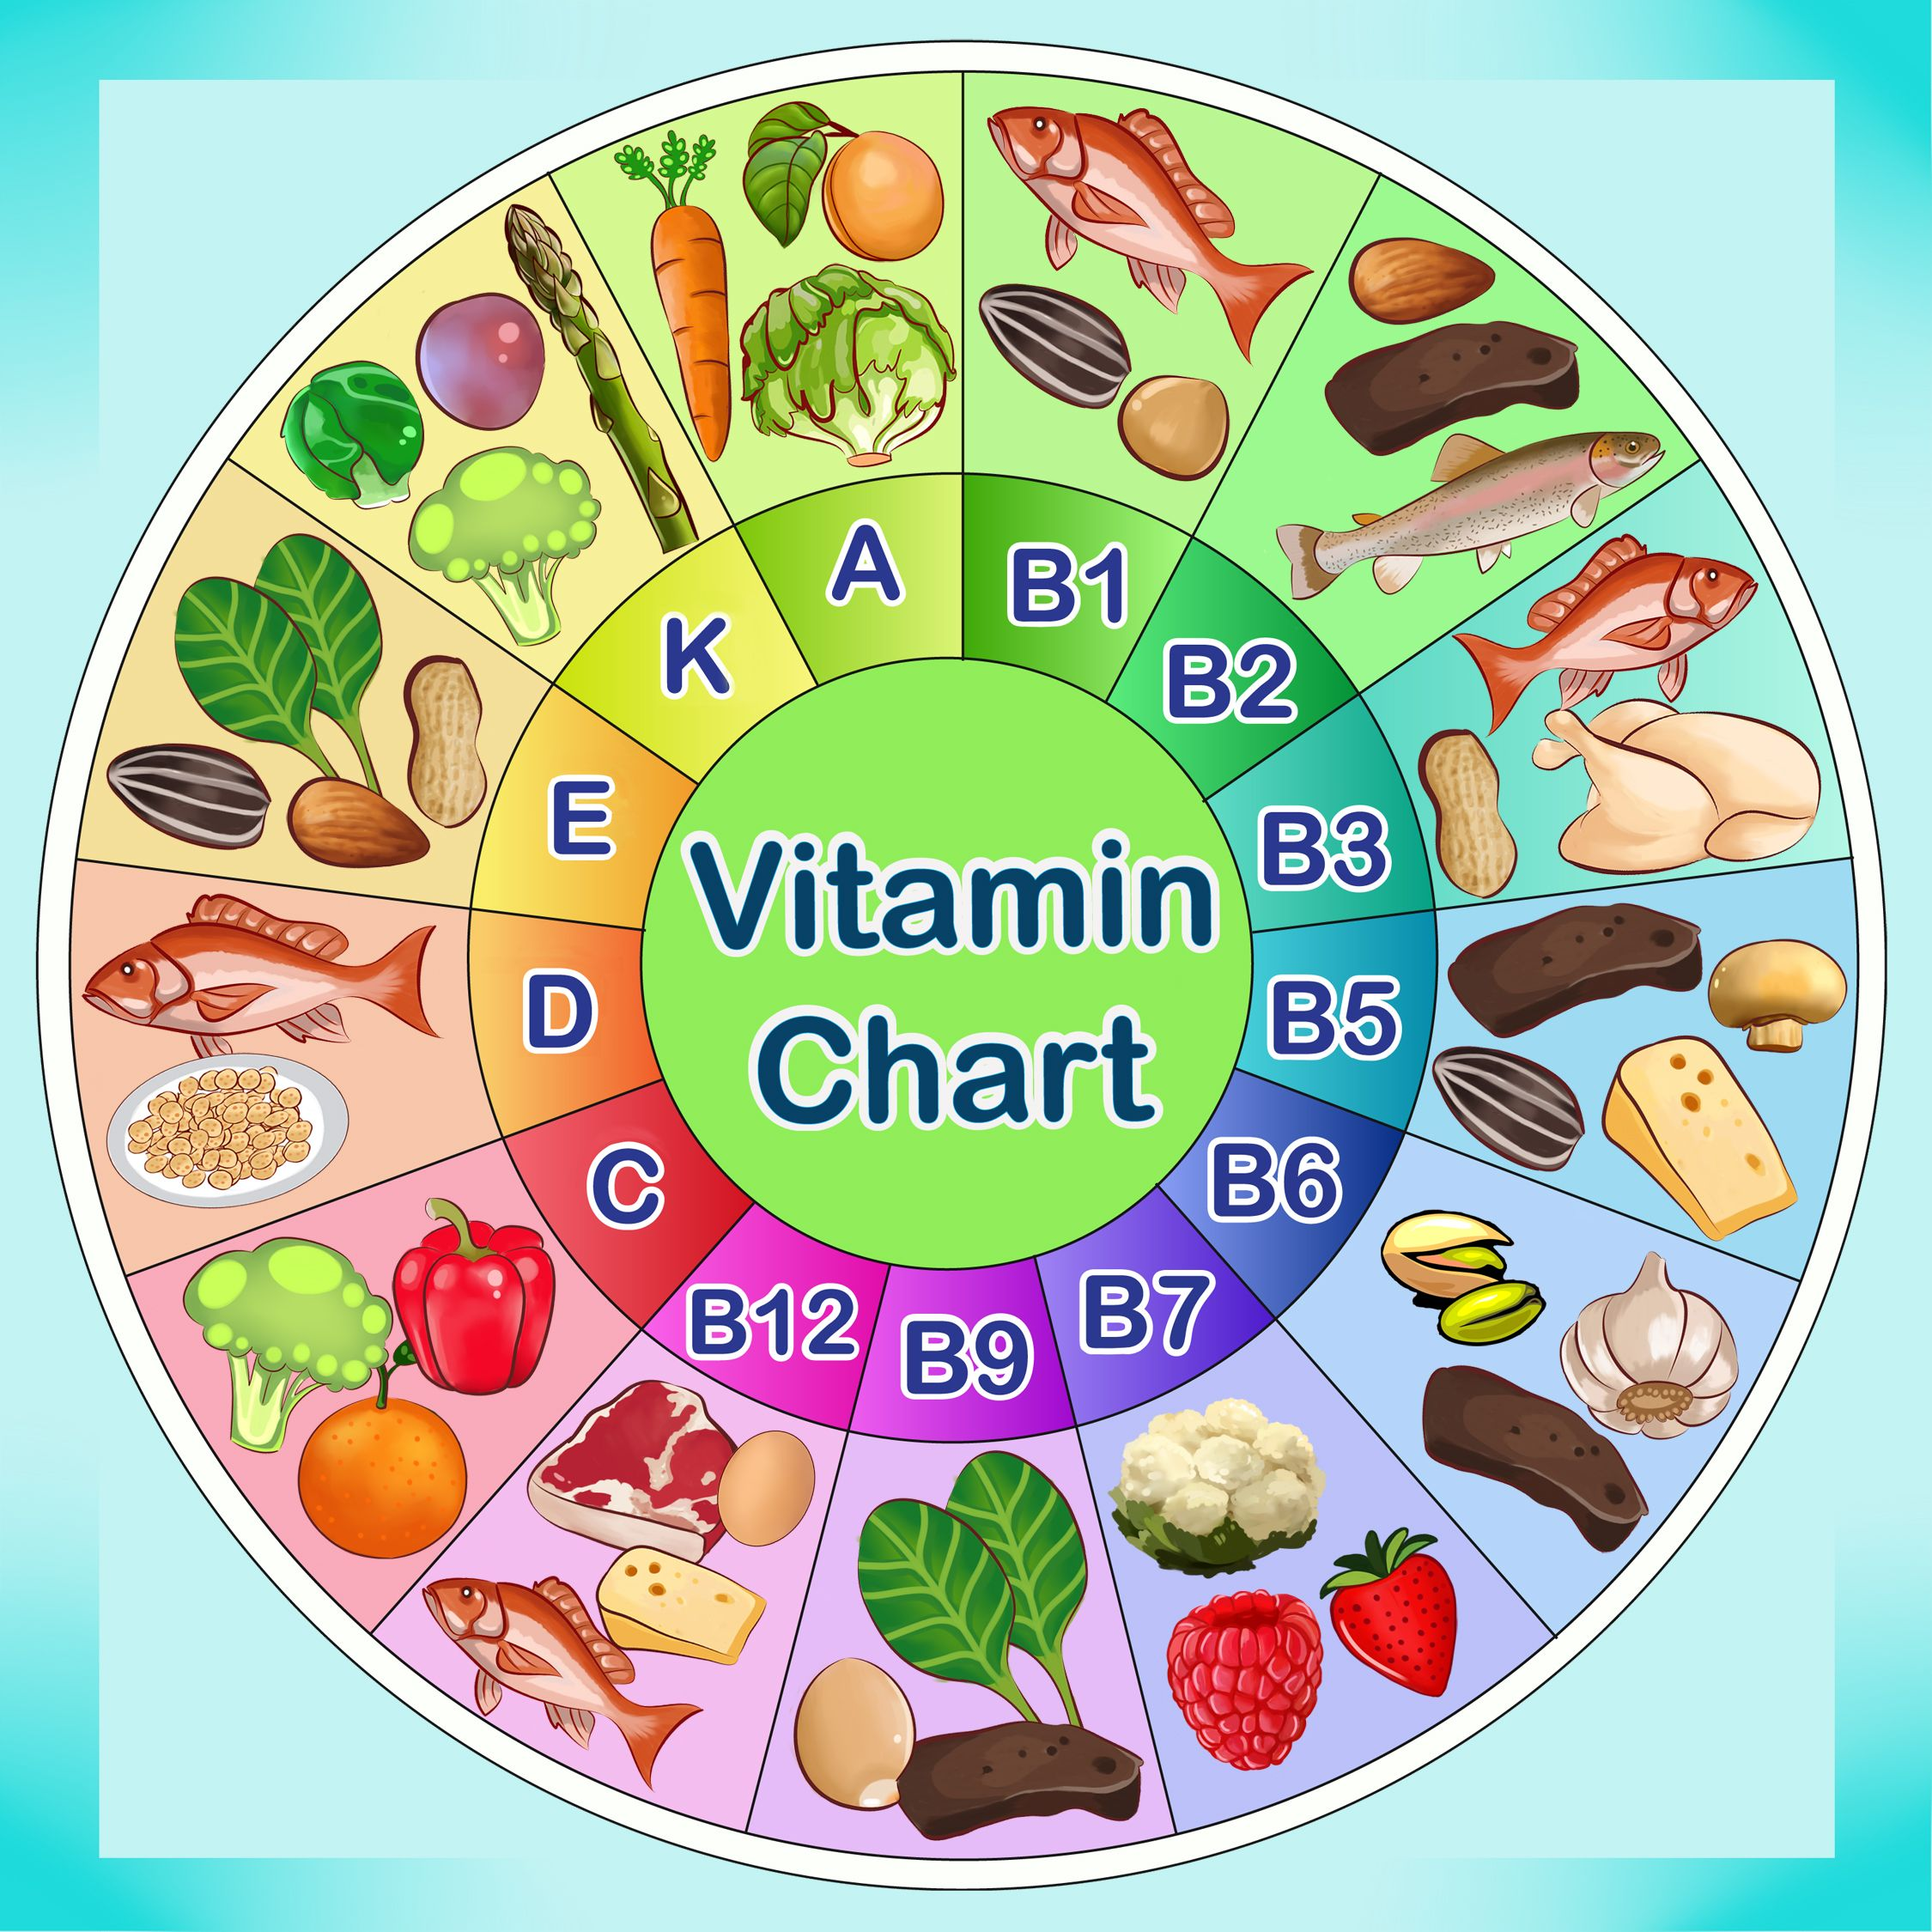 Vitamins are natural elements that are vital for the